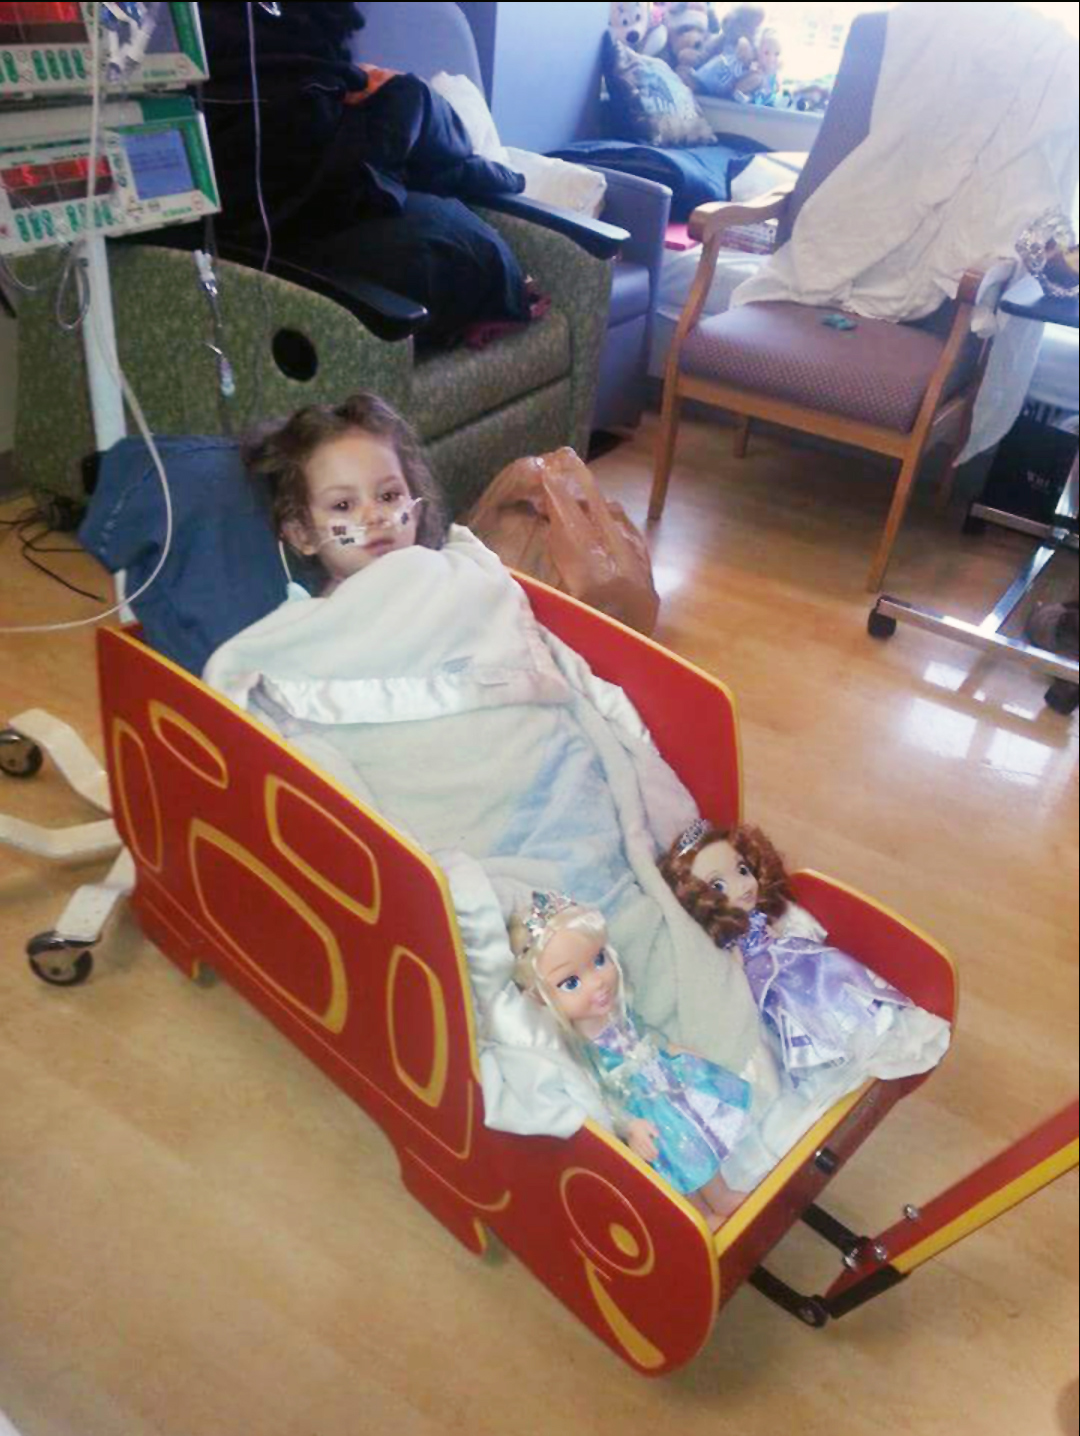 Wagon with patient %28shared with permission%29